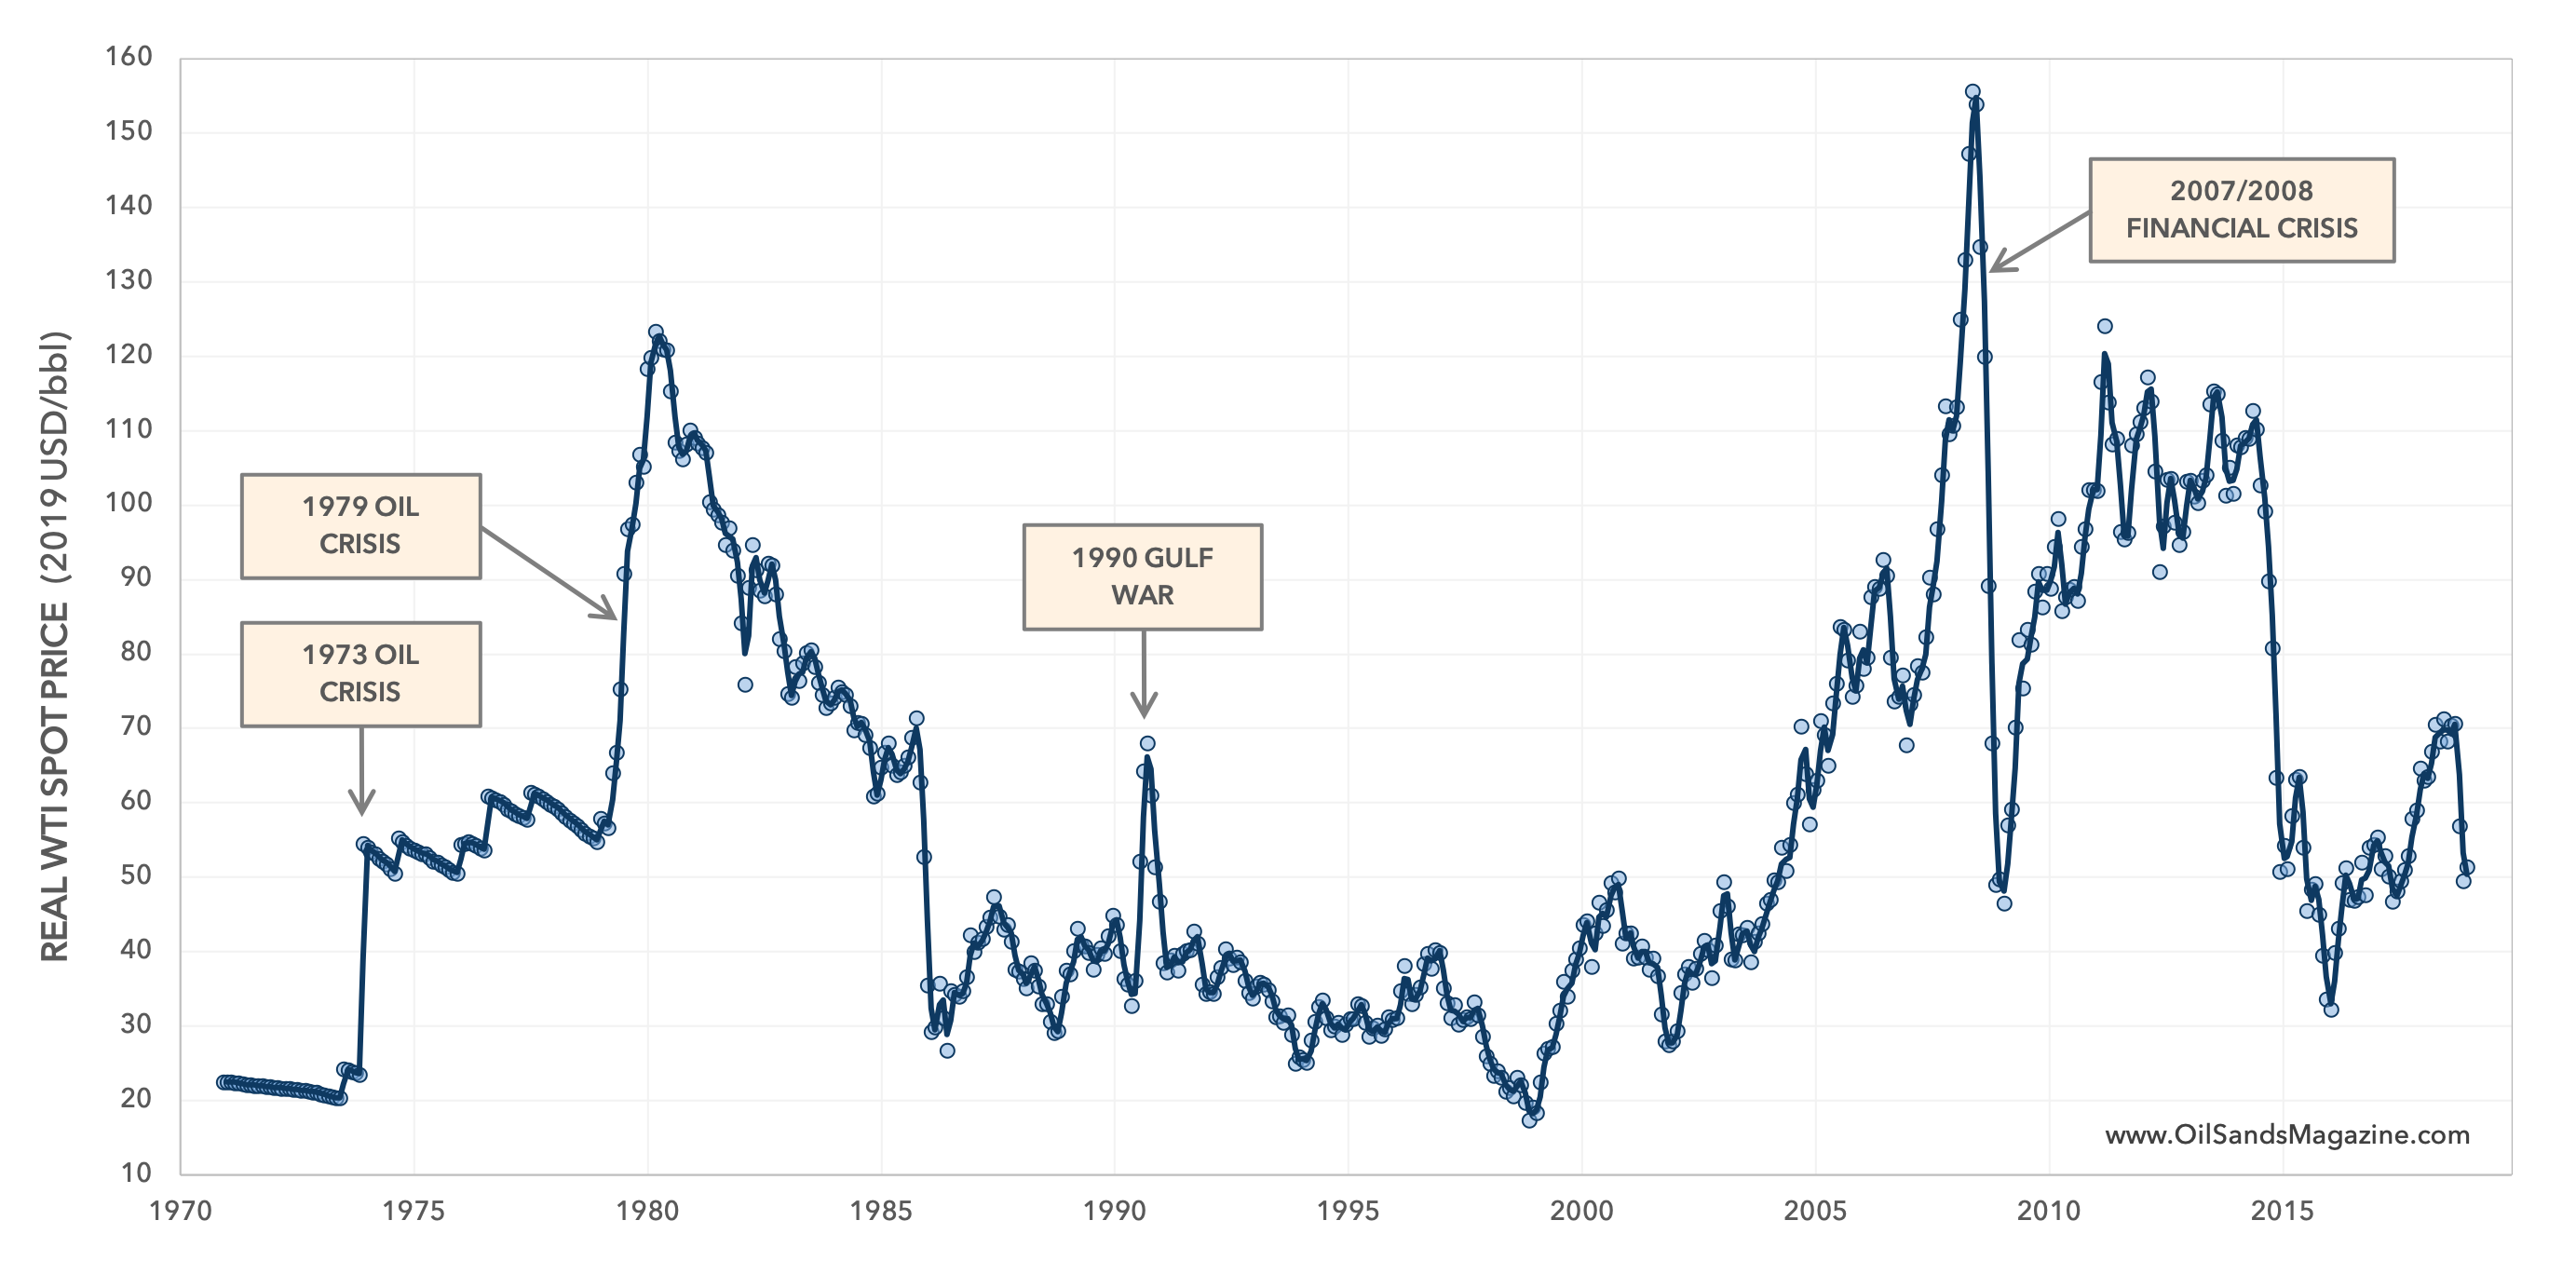 INFLATION-ADJUSTED US OIL PRICE (WEST TEXAS) 2019 DOLLARS PER BARREL